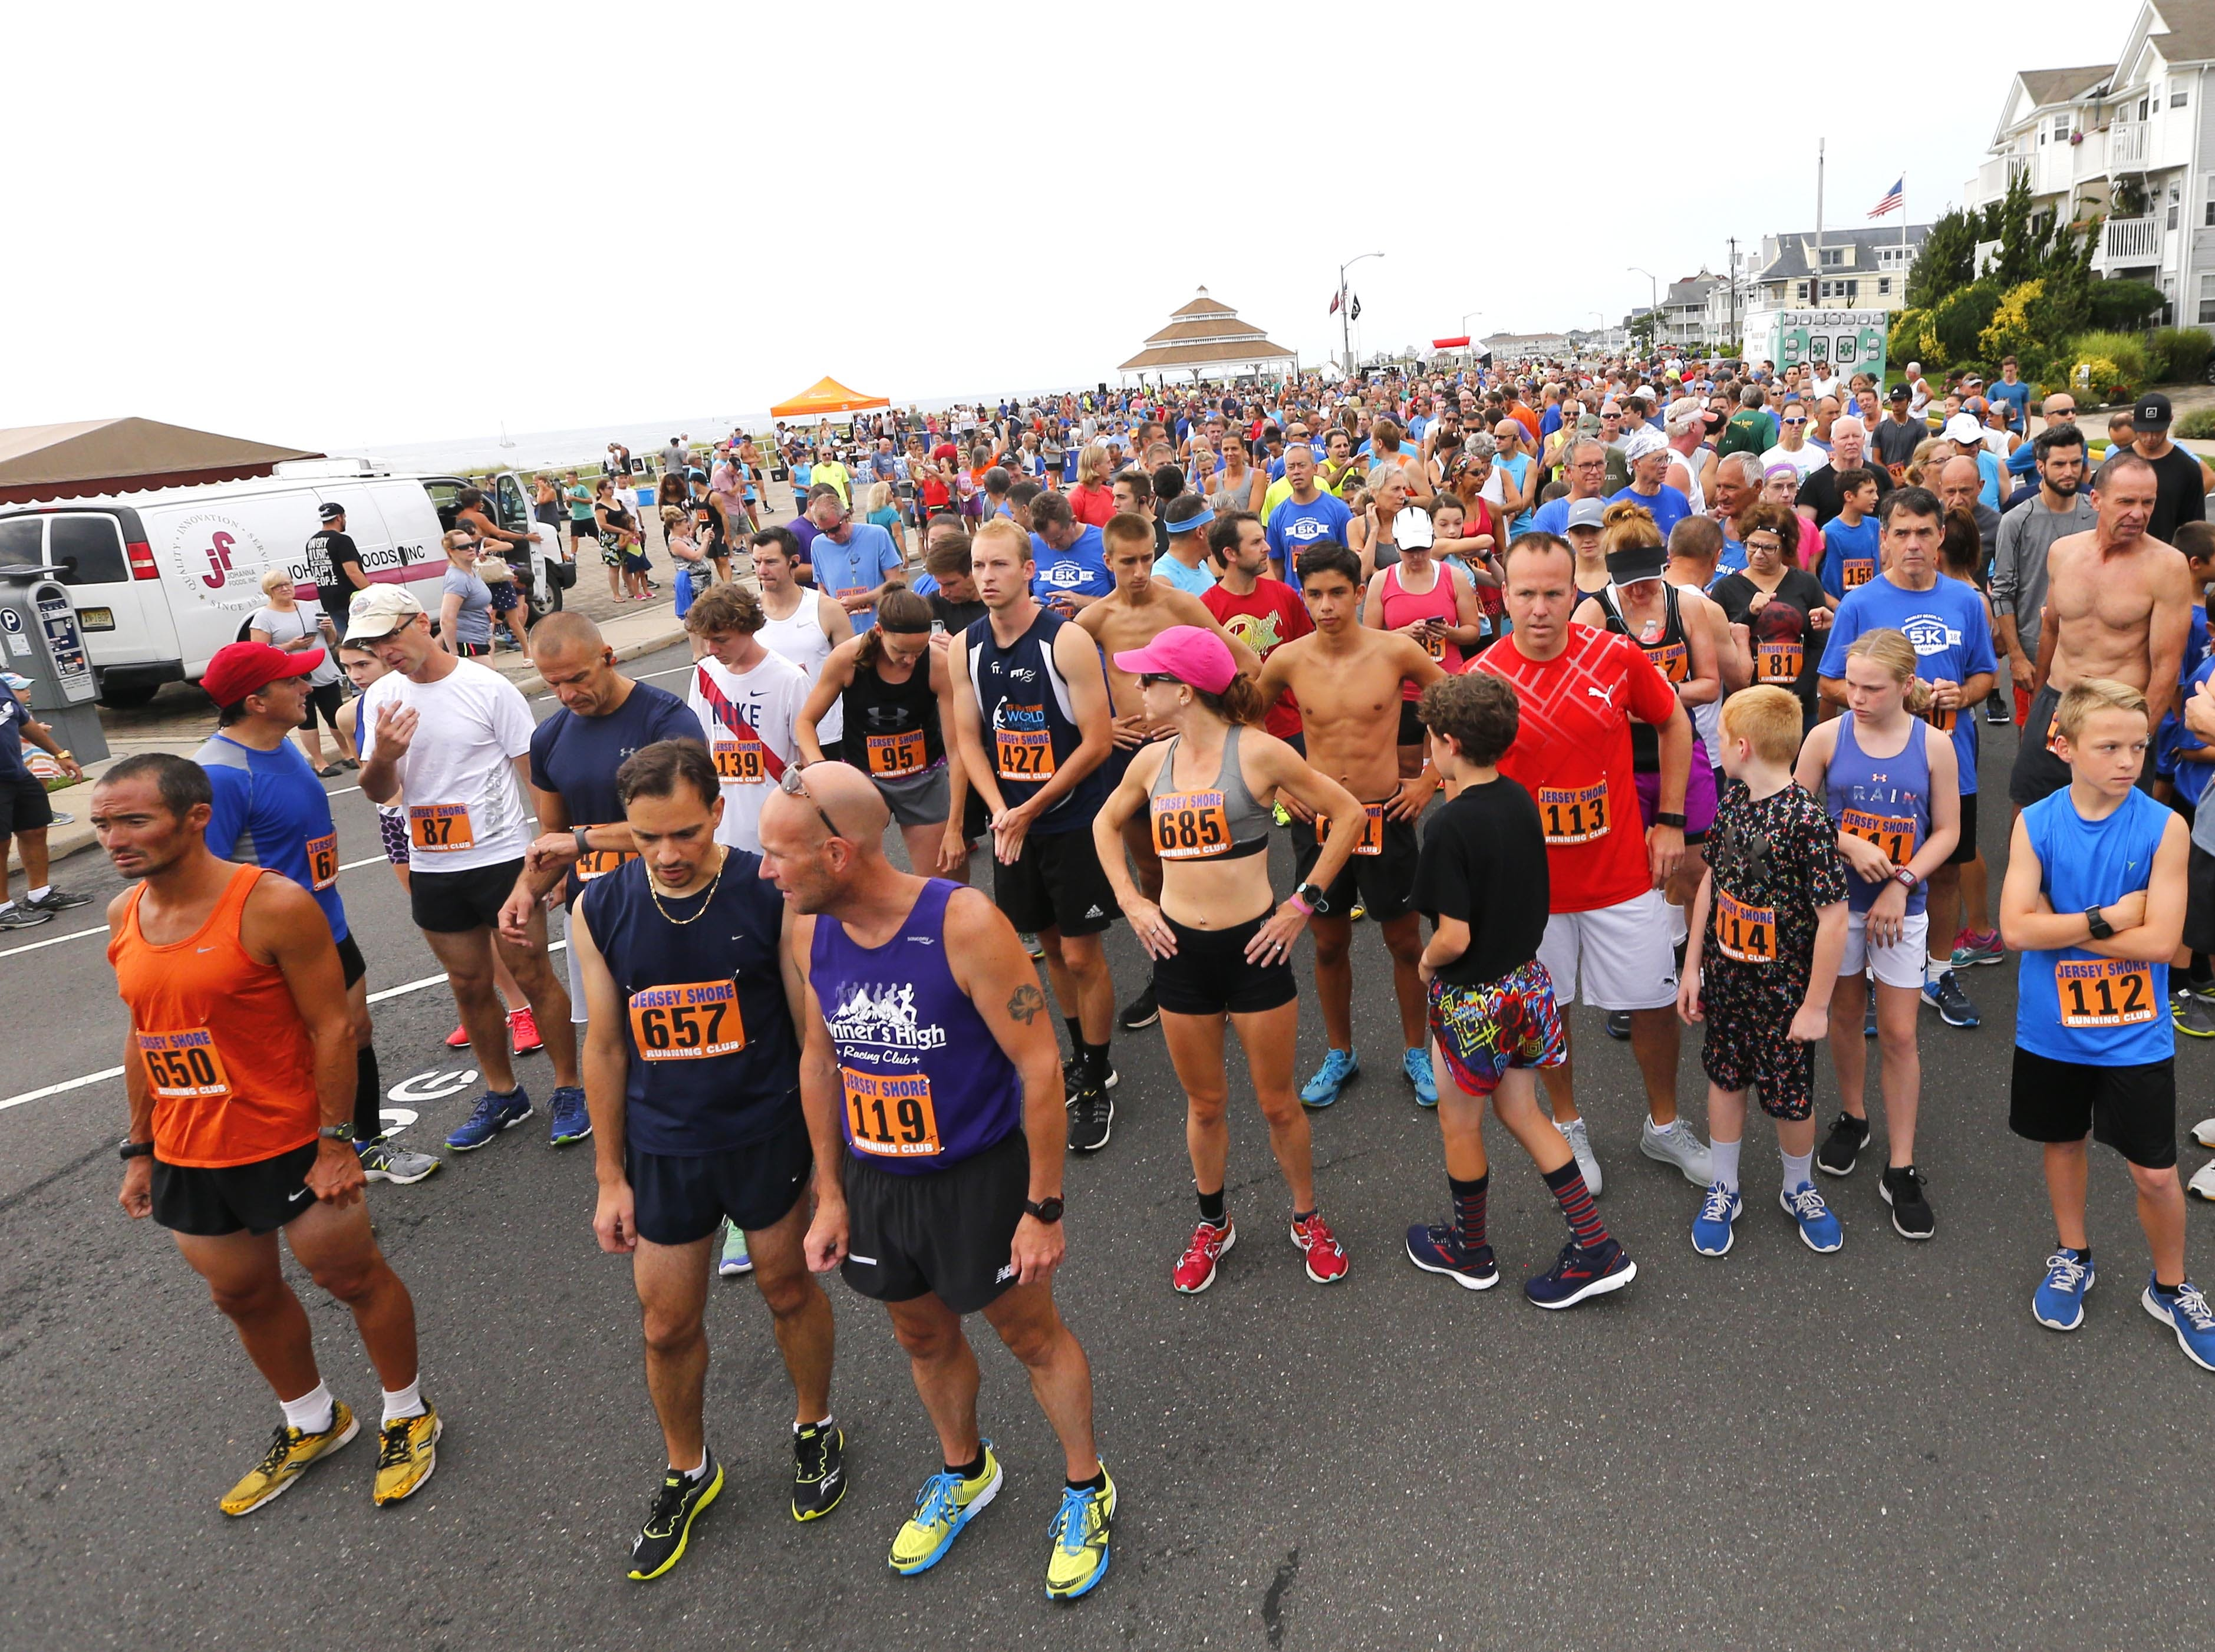 Runners line up for the start of the Bradley Beach 5K race along Ocean Avenue in Bradley Beach Saturday, Aug. 17, 2018.